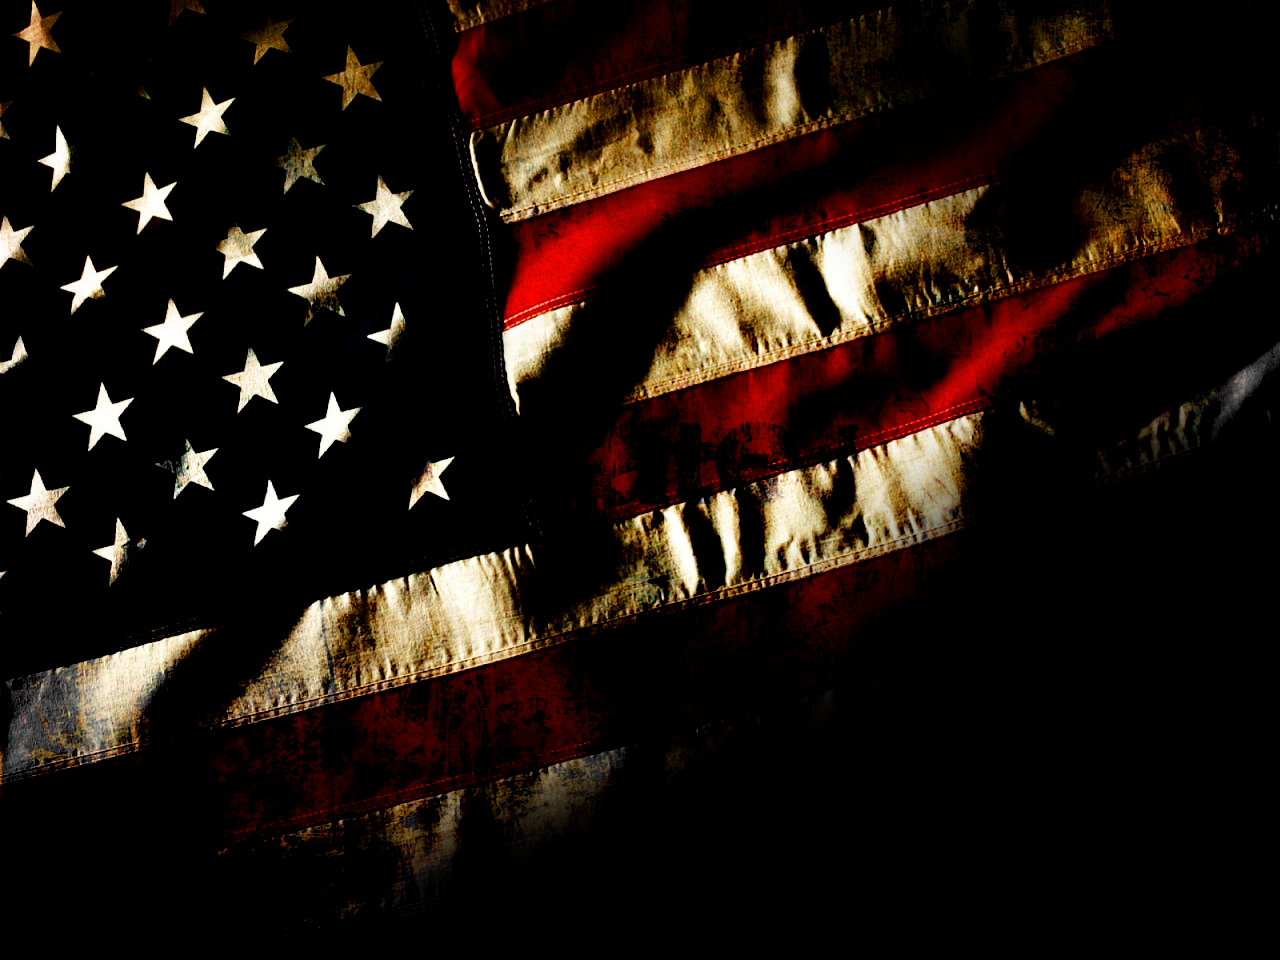 American Flag Image HD Wallpaper 3605 Wallpaper computer best 1280x960